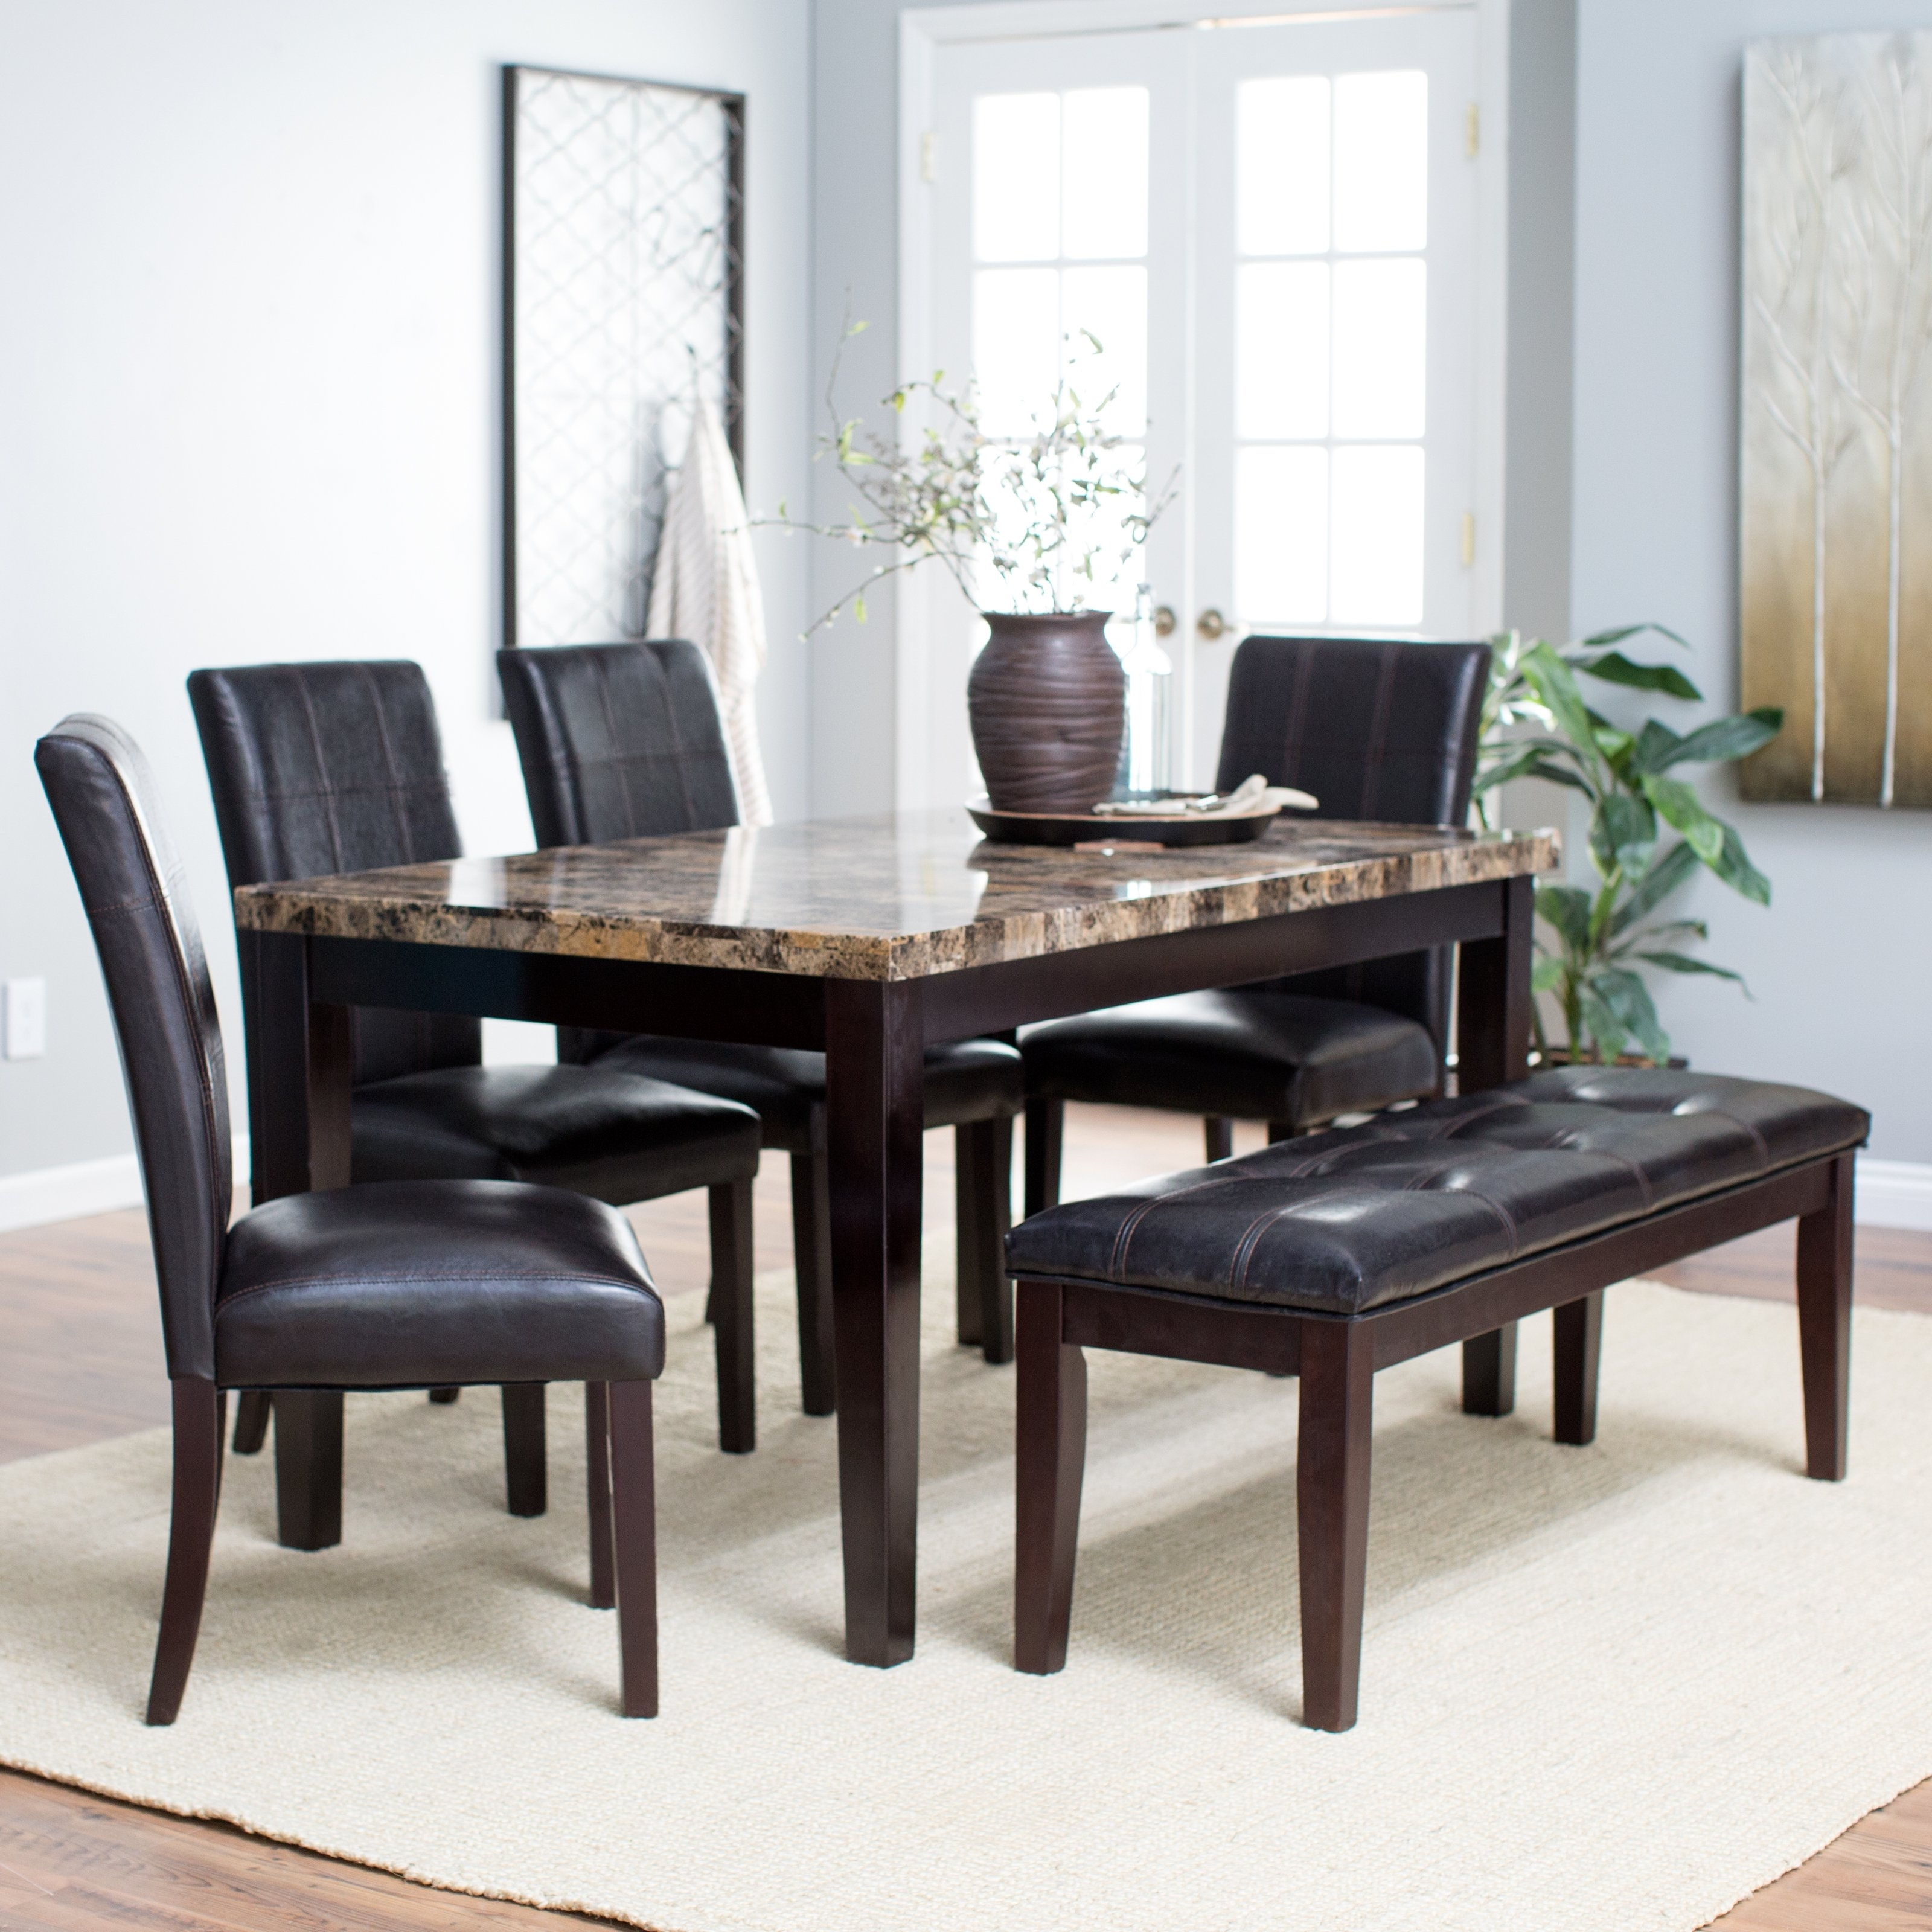 Widely Used Kitchen Dining Sets Throughout Types Of Dining Table Sets – Pickndecor (View 25 of 25)